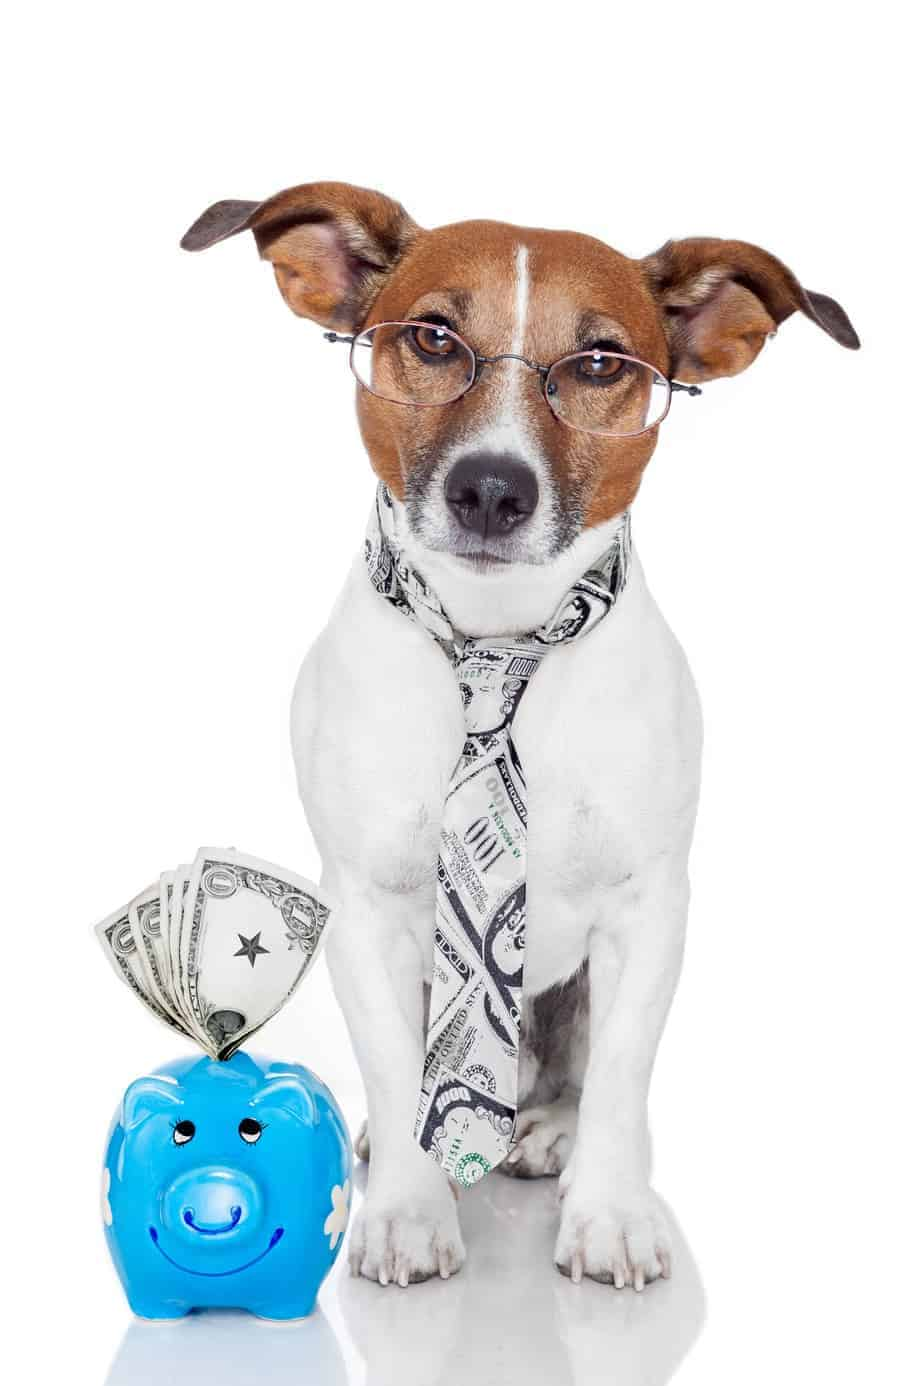 Jack Russell terrier wearing a tie and sitting next to a piggy bank stuffed with money. Thrifty dog owner: Save money by buying food in bulk and making your own treats and toys.